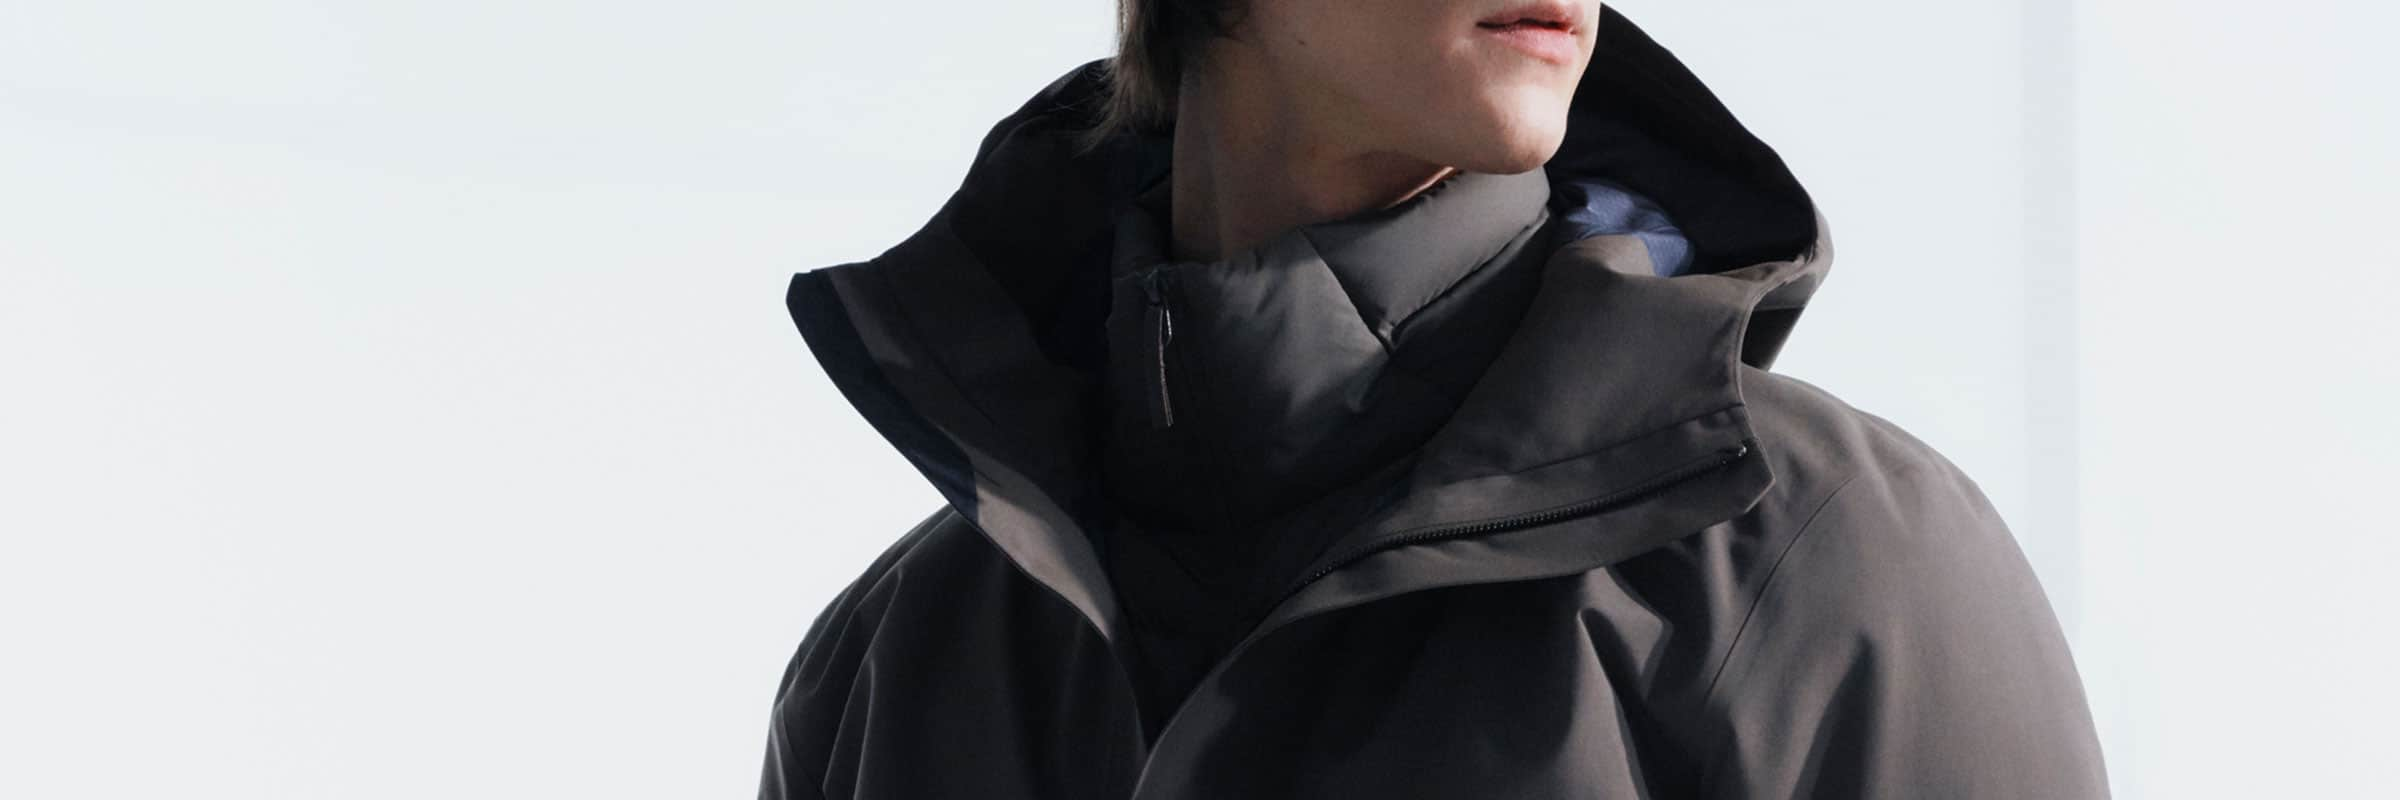 Arc'teryx Veilance: the Forefront of Design